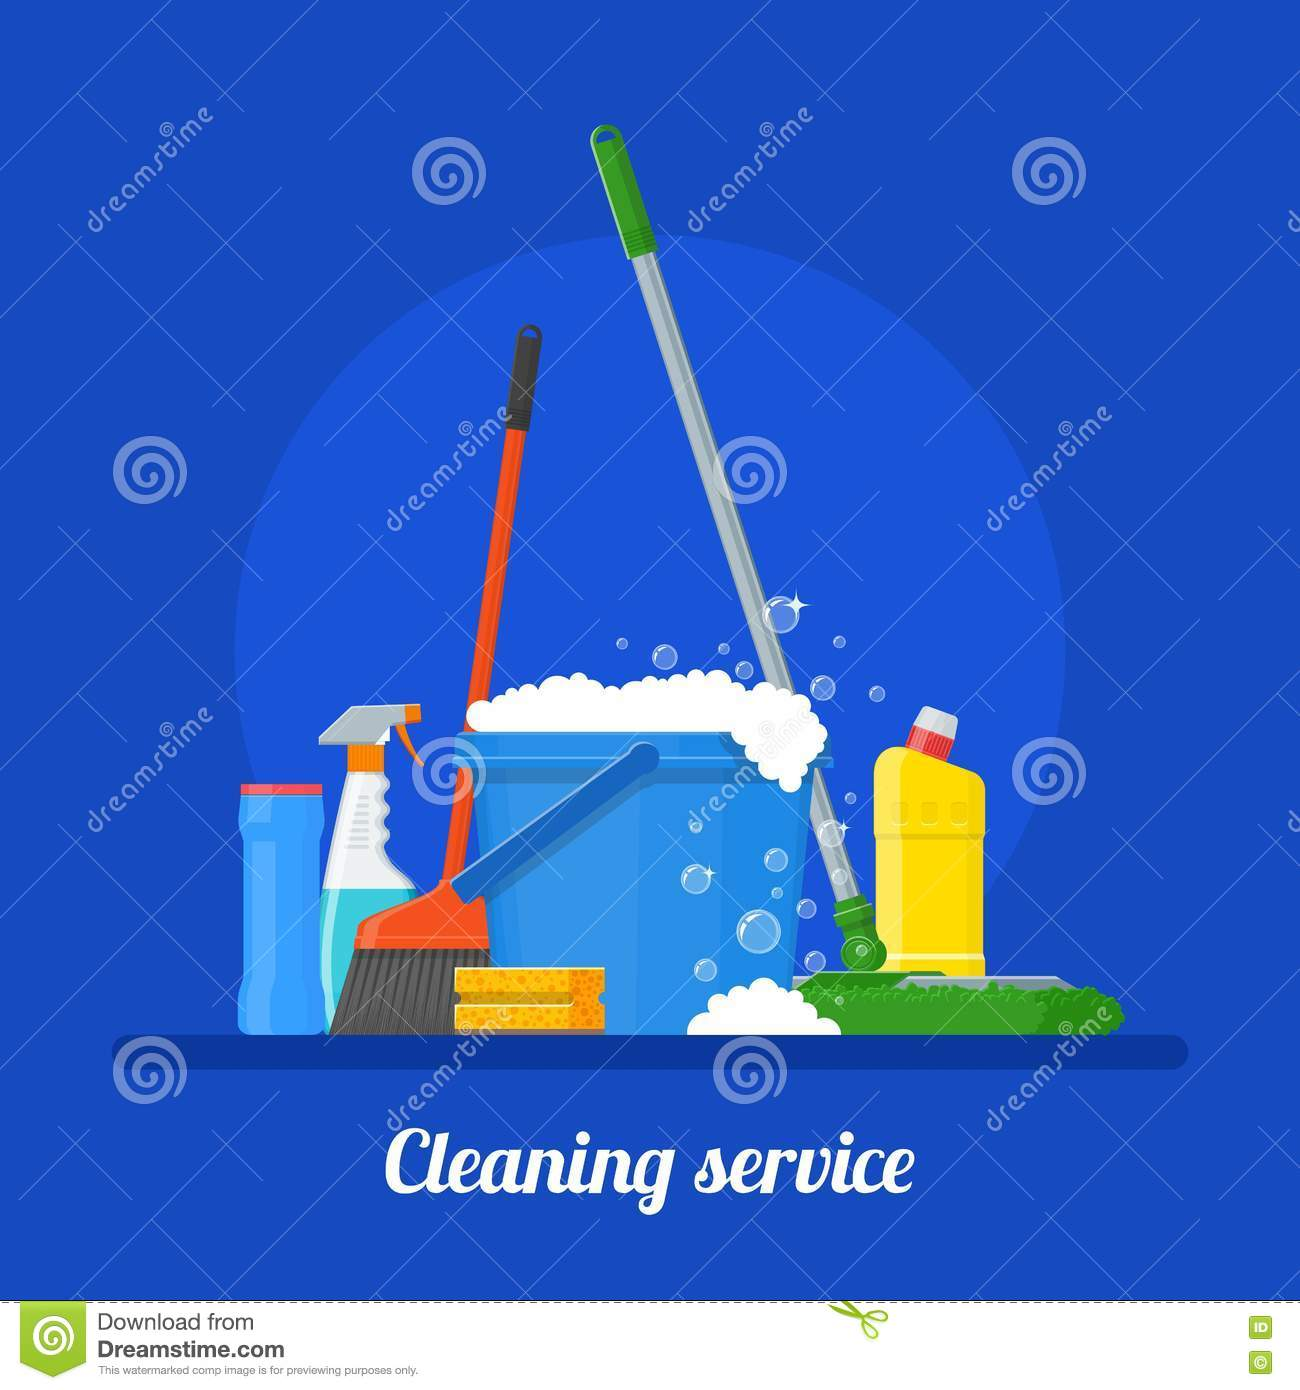 Cleaning Service Company Concept Vector Illustration